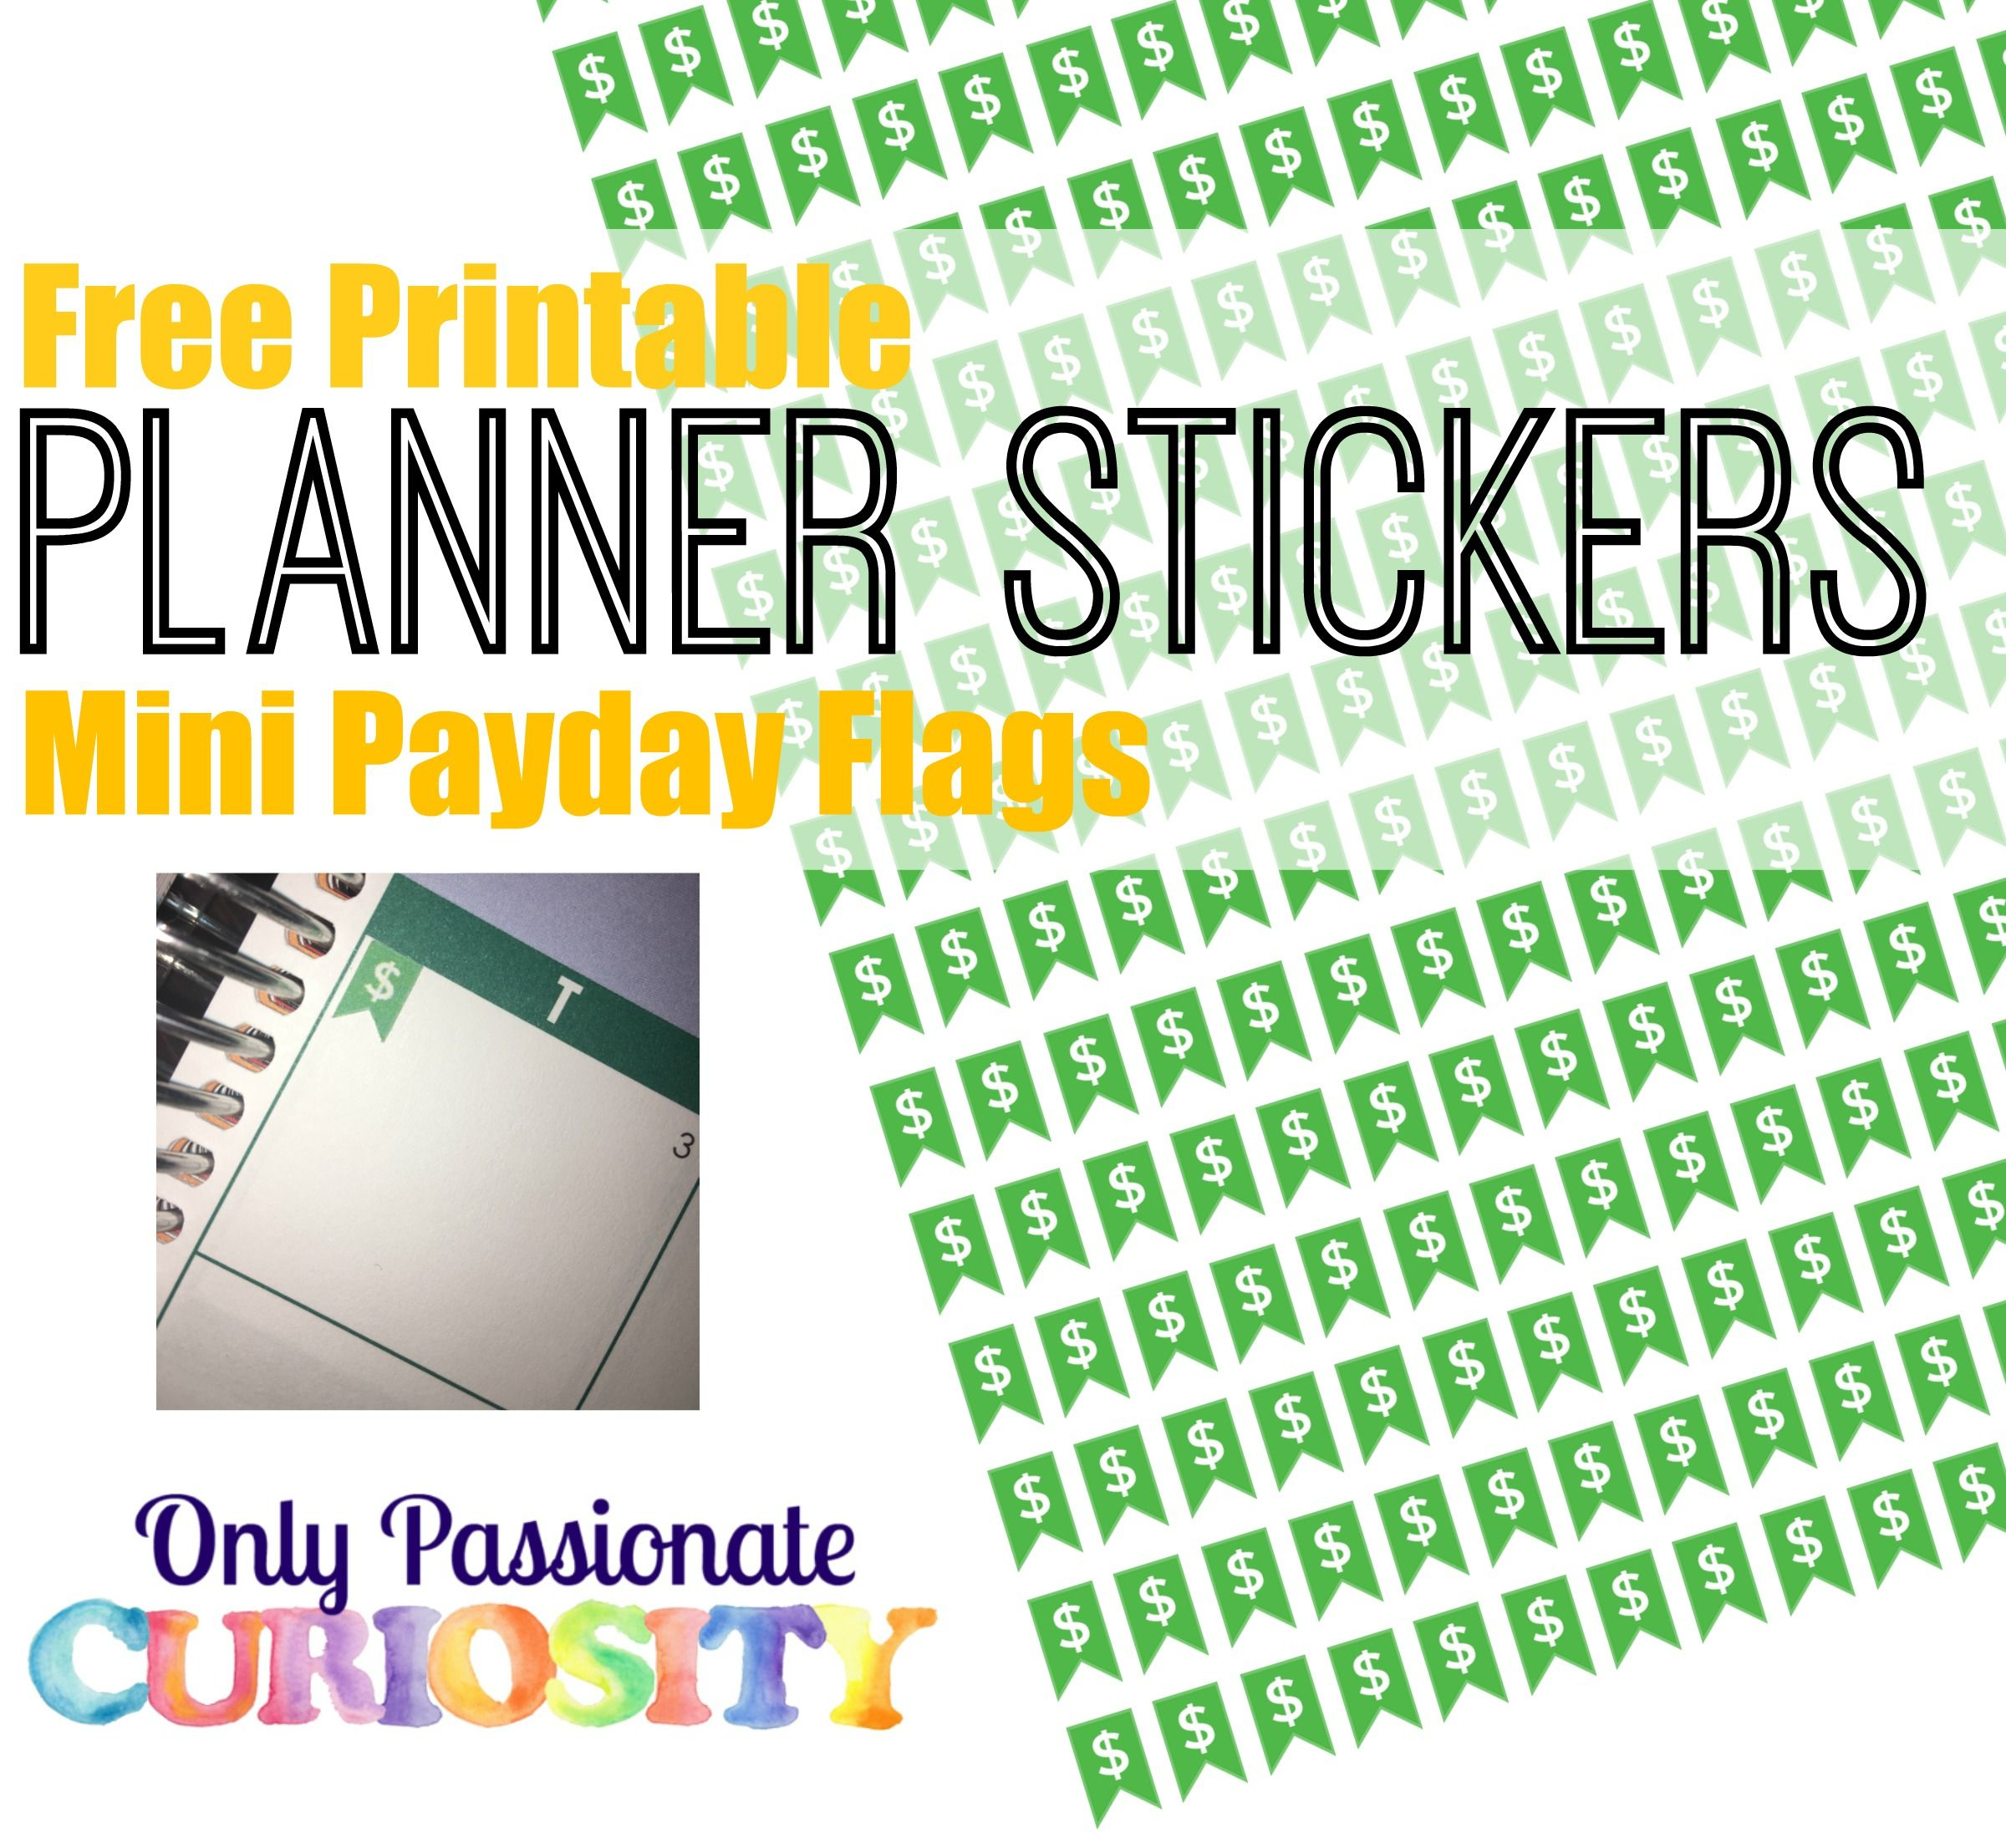 Printable Payday Flag Planner Stickers | Free Planner Stickers - Free Printable Keyboard Stickers